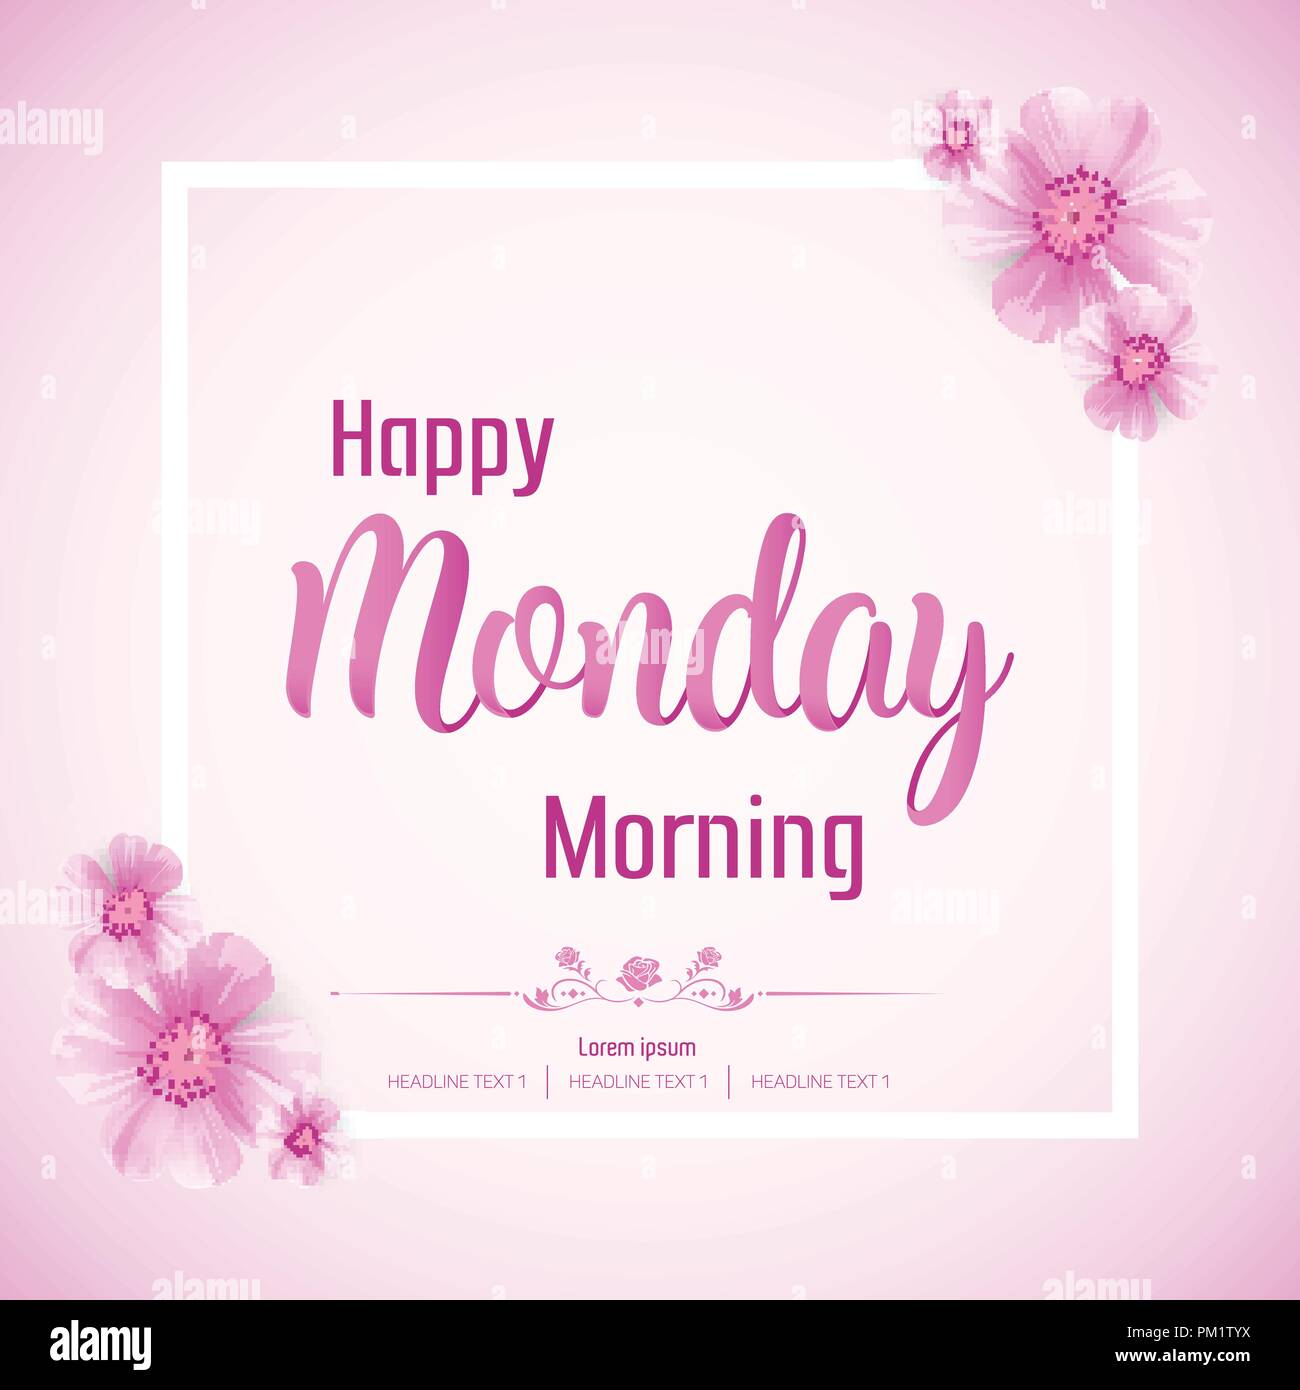 Monday Morning Quotes Stock Photos Monday Morning Quotes Stock